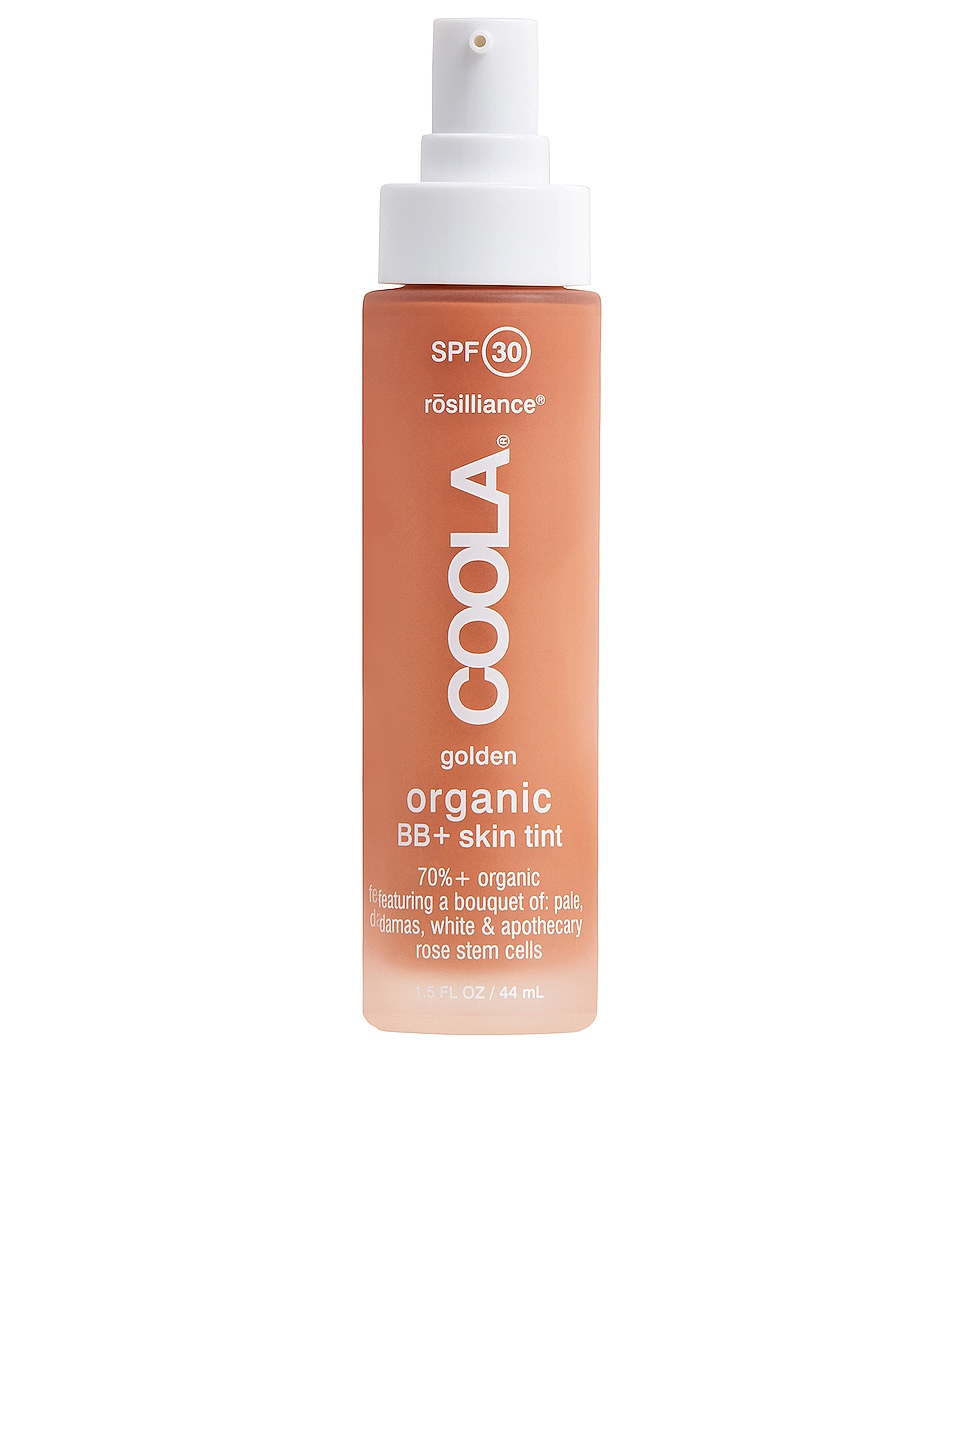 COOLA Mineral Face SPF 30 Rosilliance BB Cream in Golden